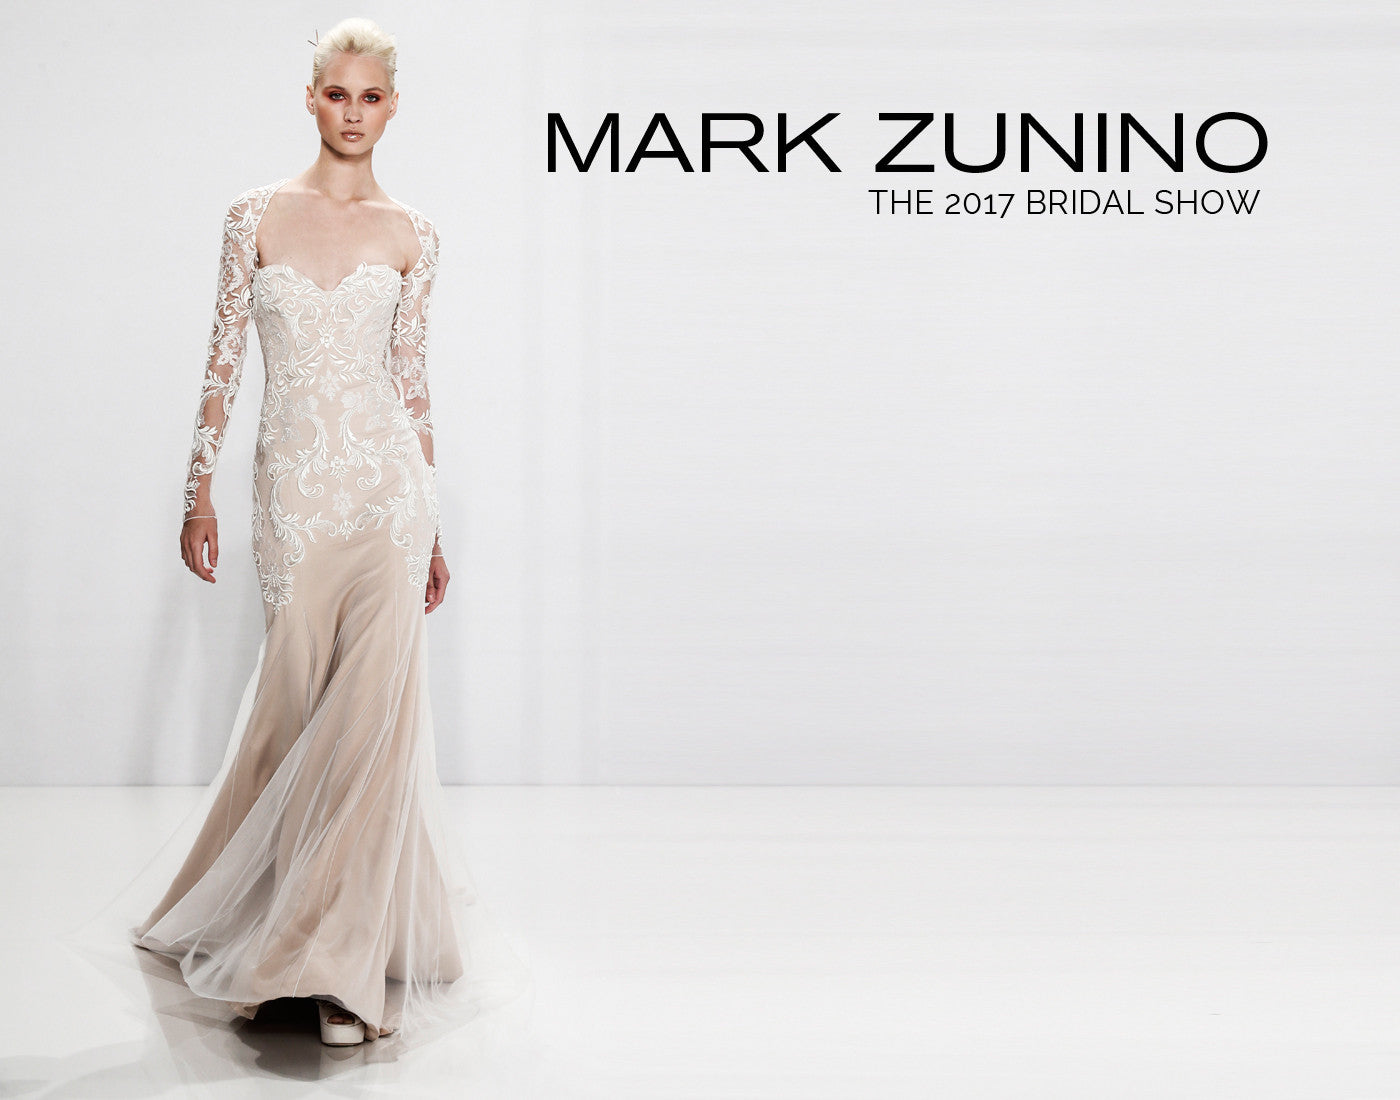 THE 2017 MARK ZUNINO BRIDAL SHOW